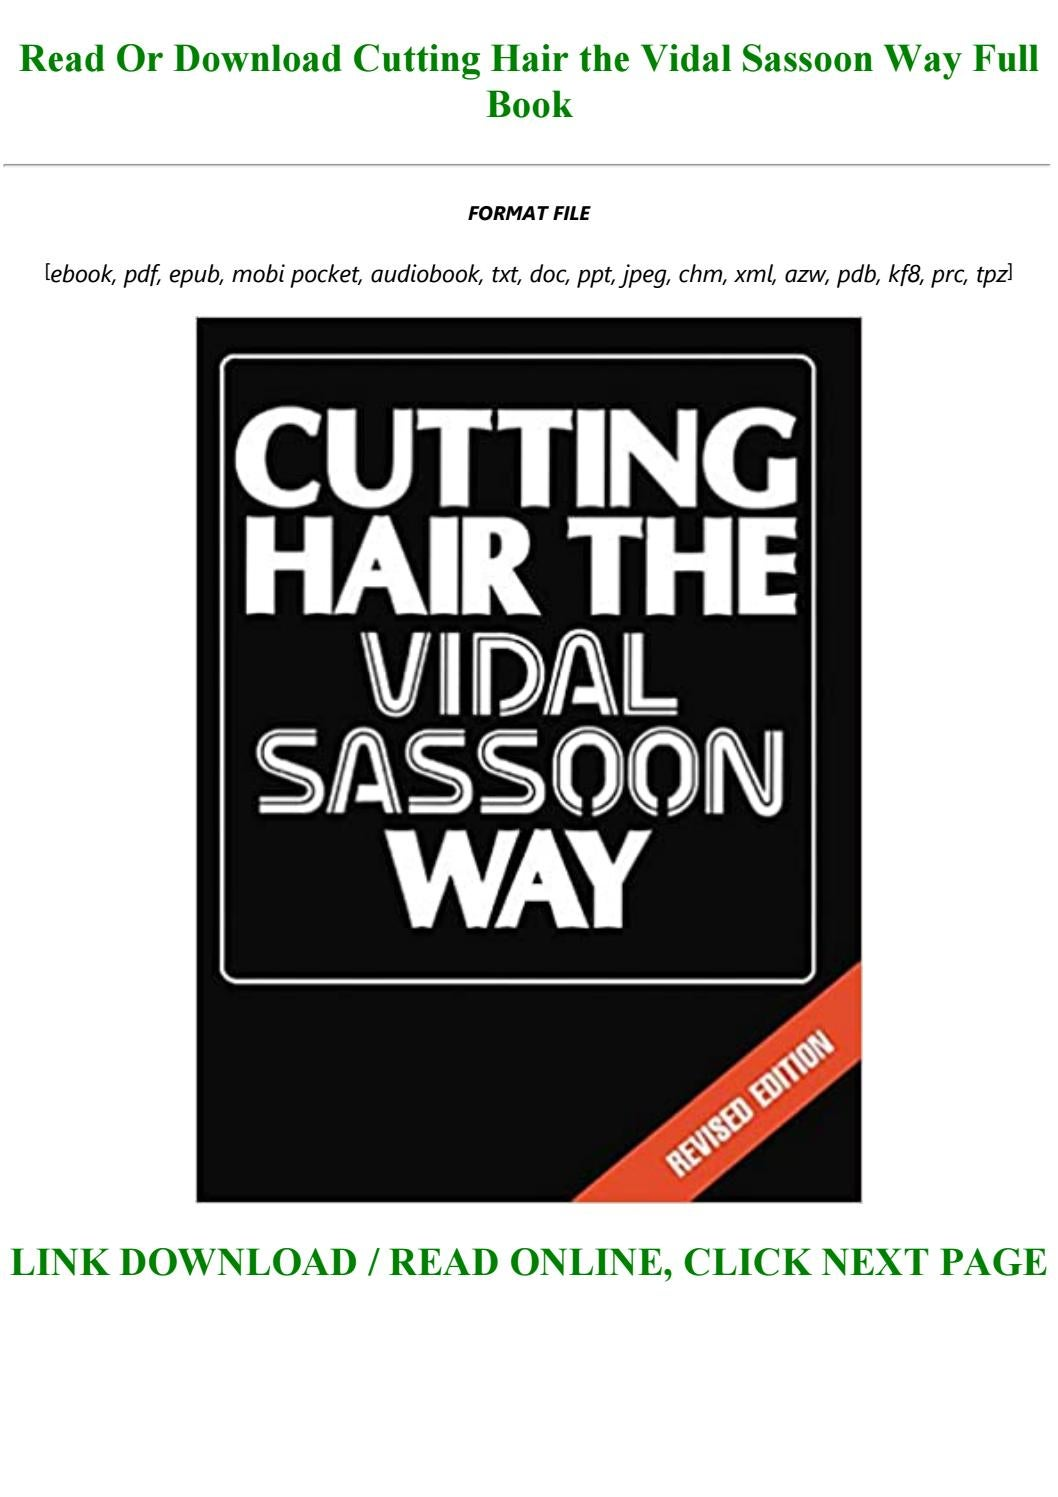 Read Book [PDF] Cutting Hair the Vidal Sassoon Way Full PDF Online